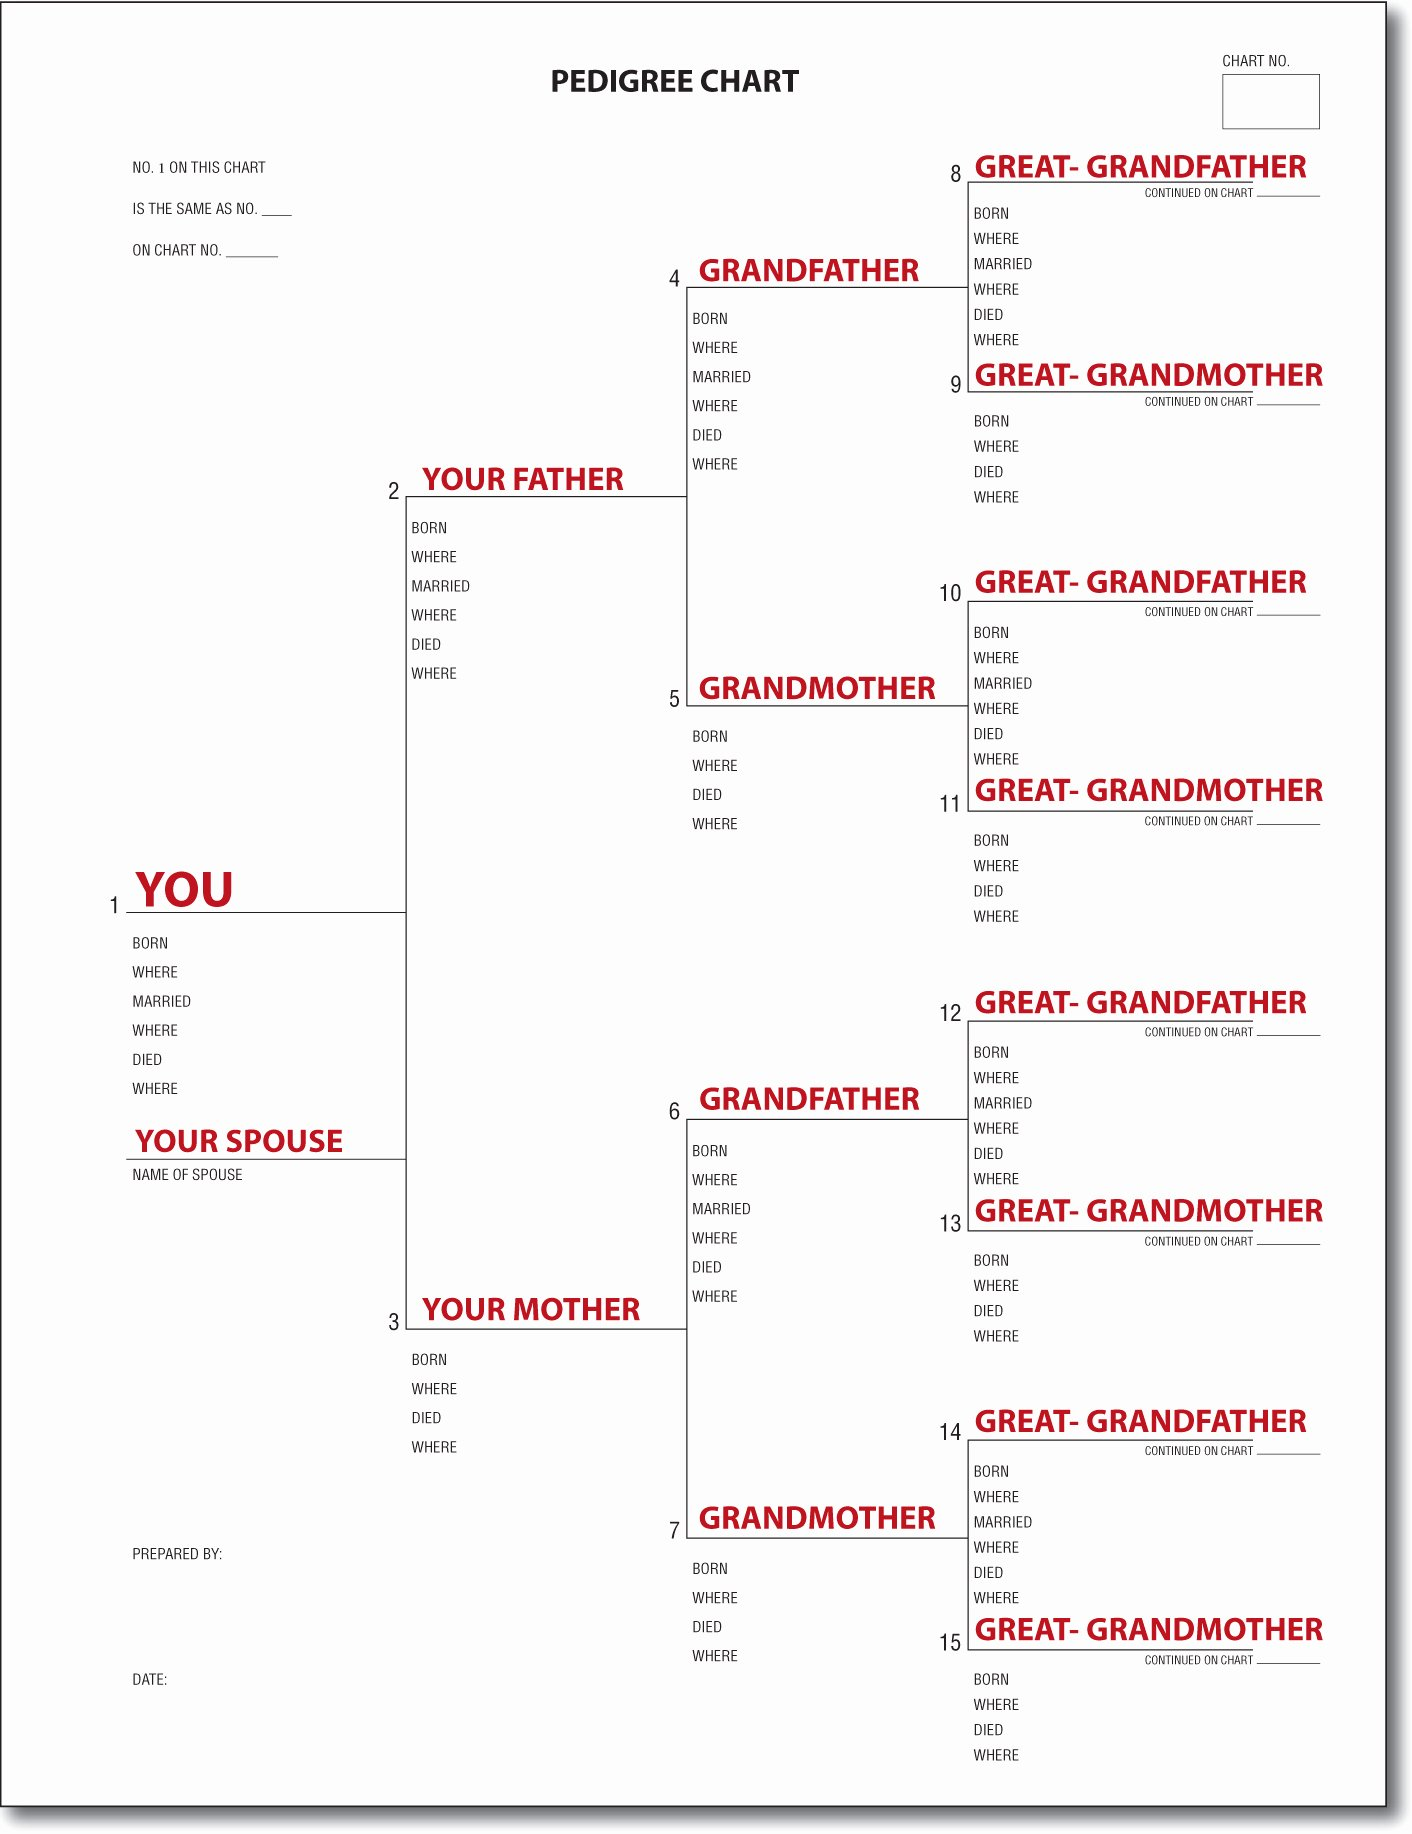 Example Of Family Tree Chart New A Pedigree Chart